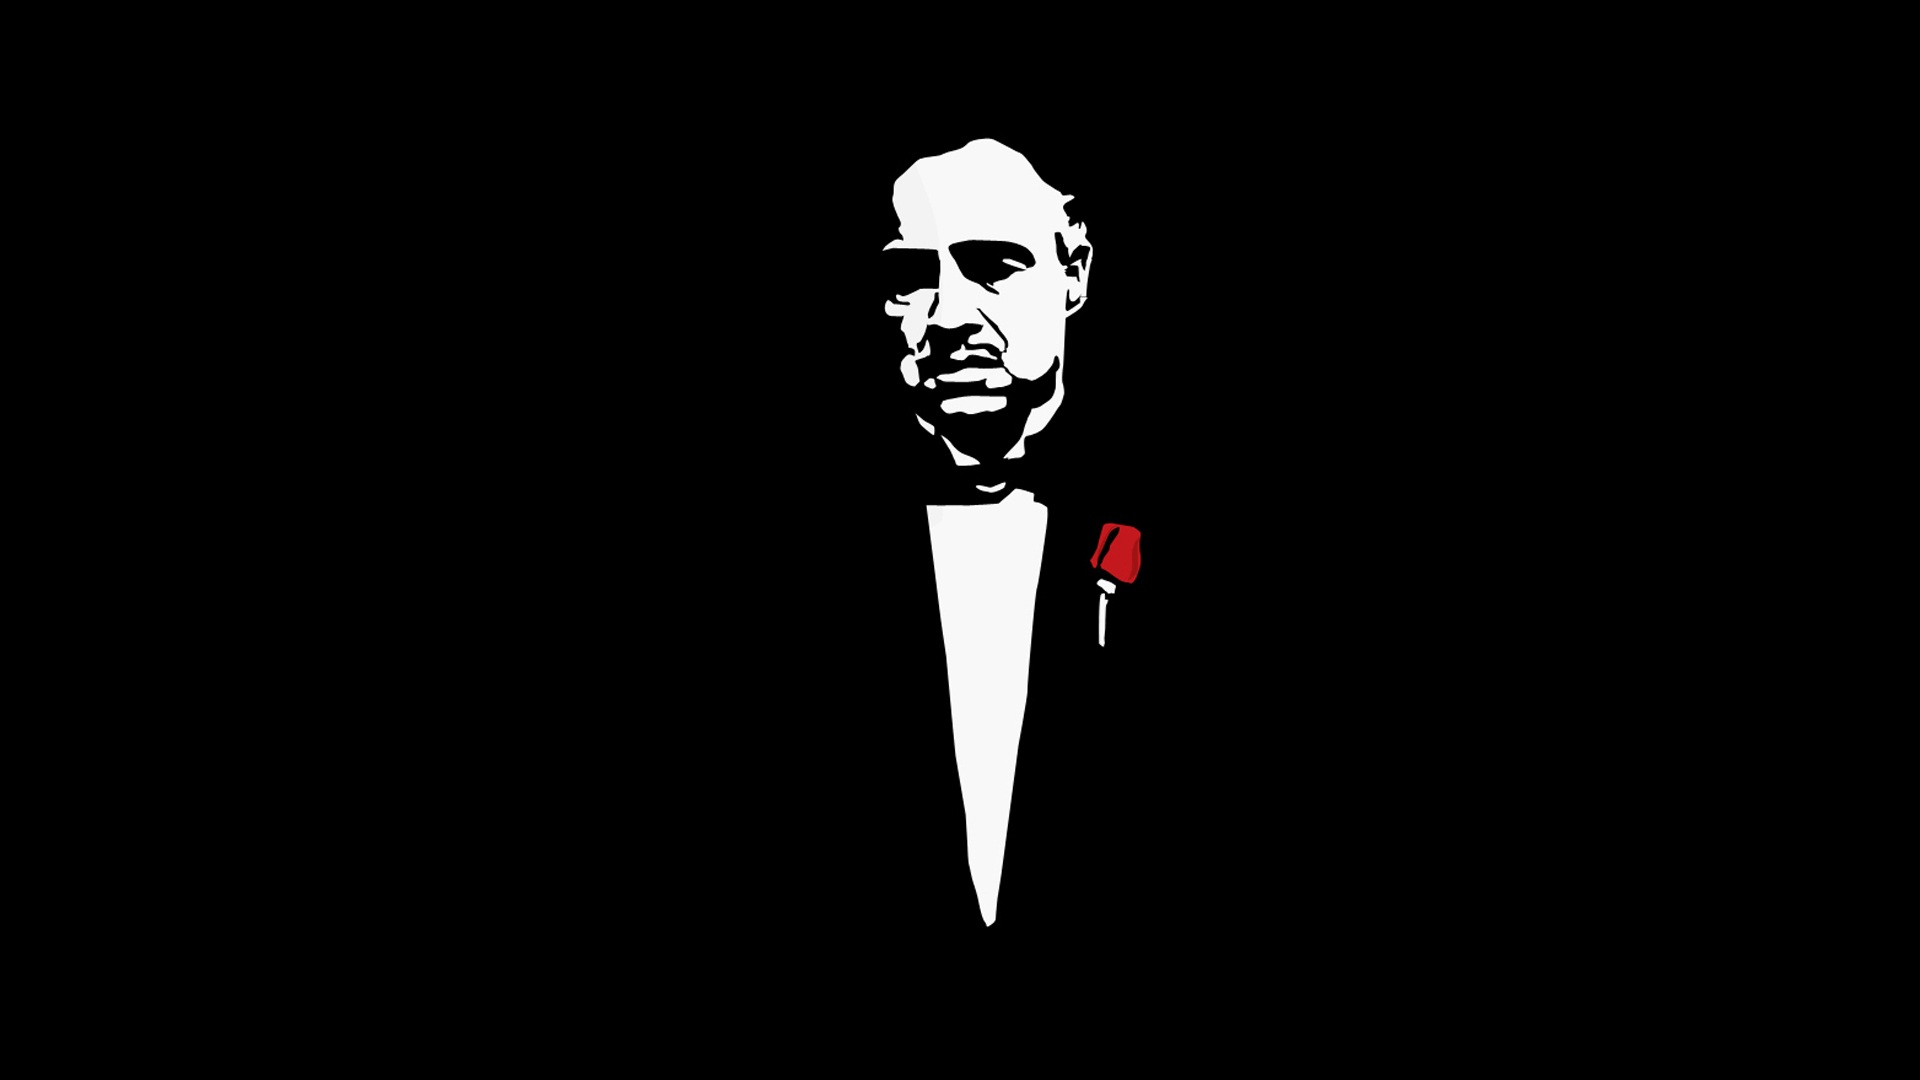 The Godfather Wallpaper Iphone X The Godfather Full Hd Wallpaper And Background Image